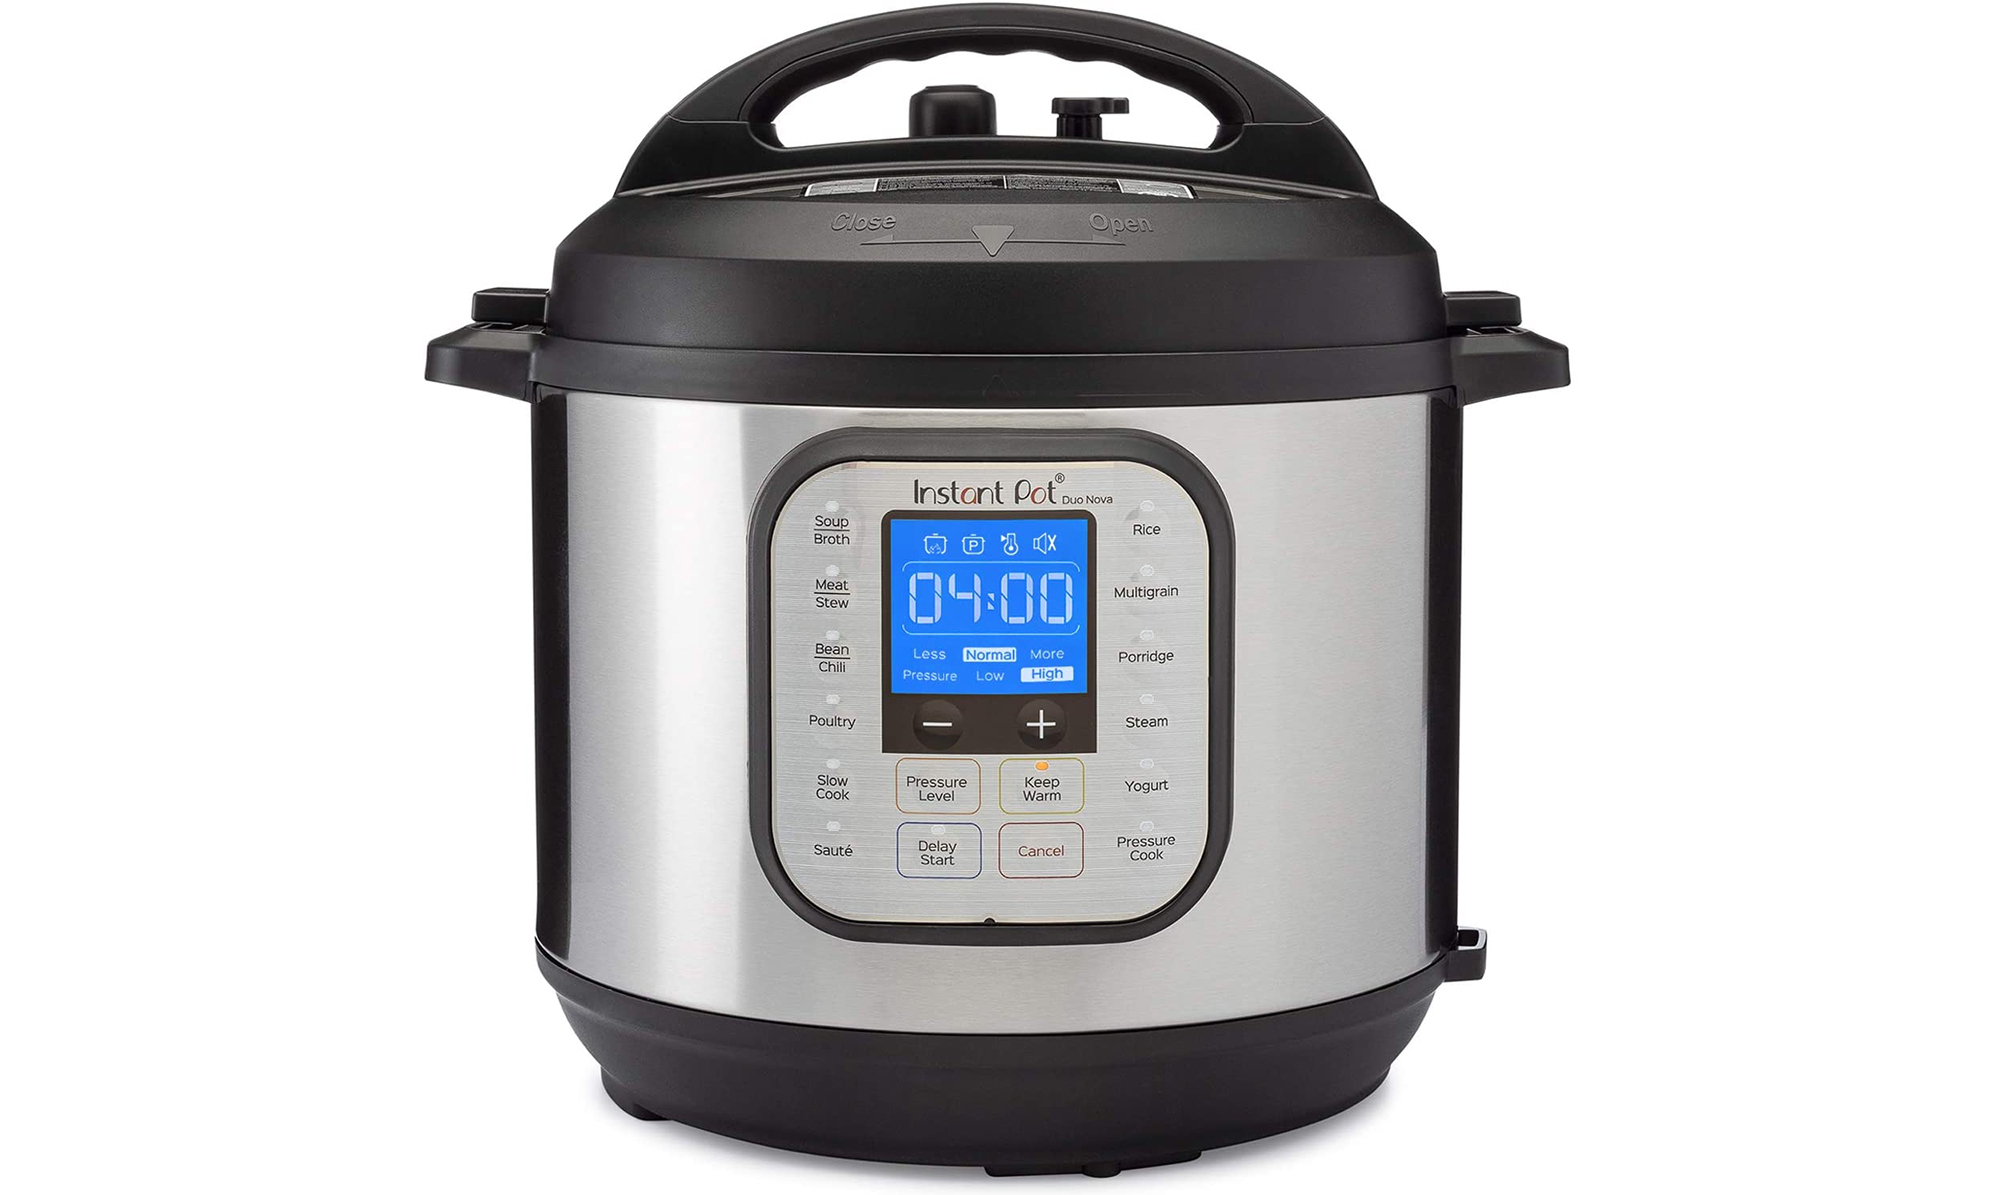 The best Instant Pot for most of us is down to $50 for Black Friday